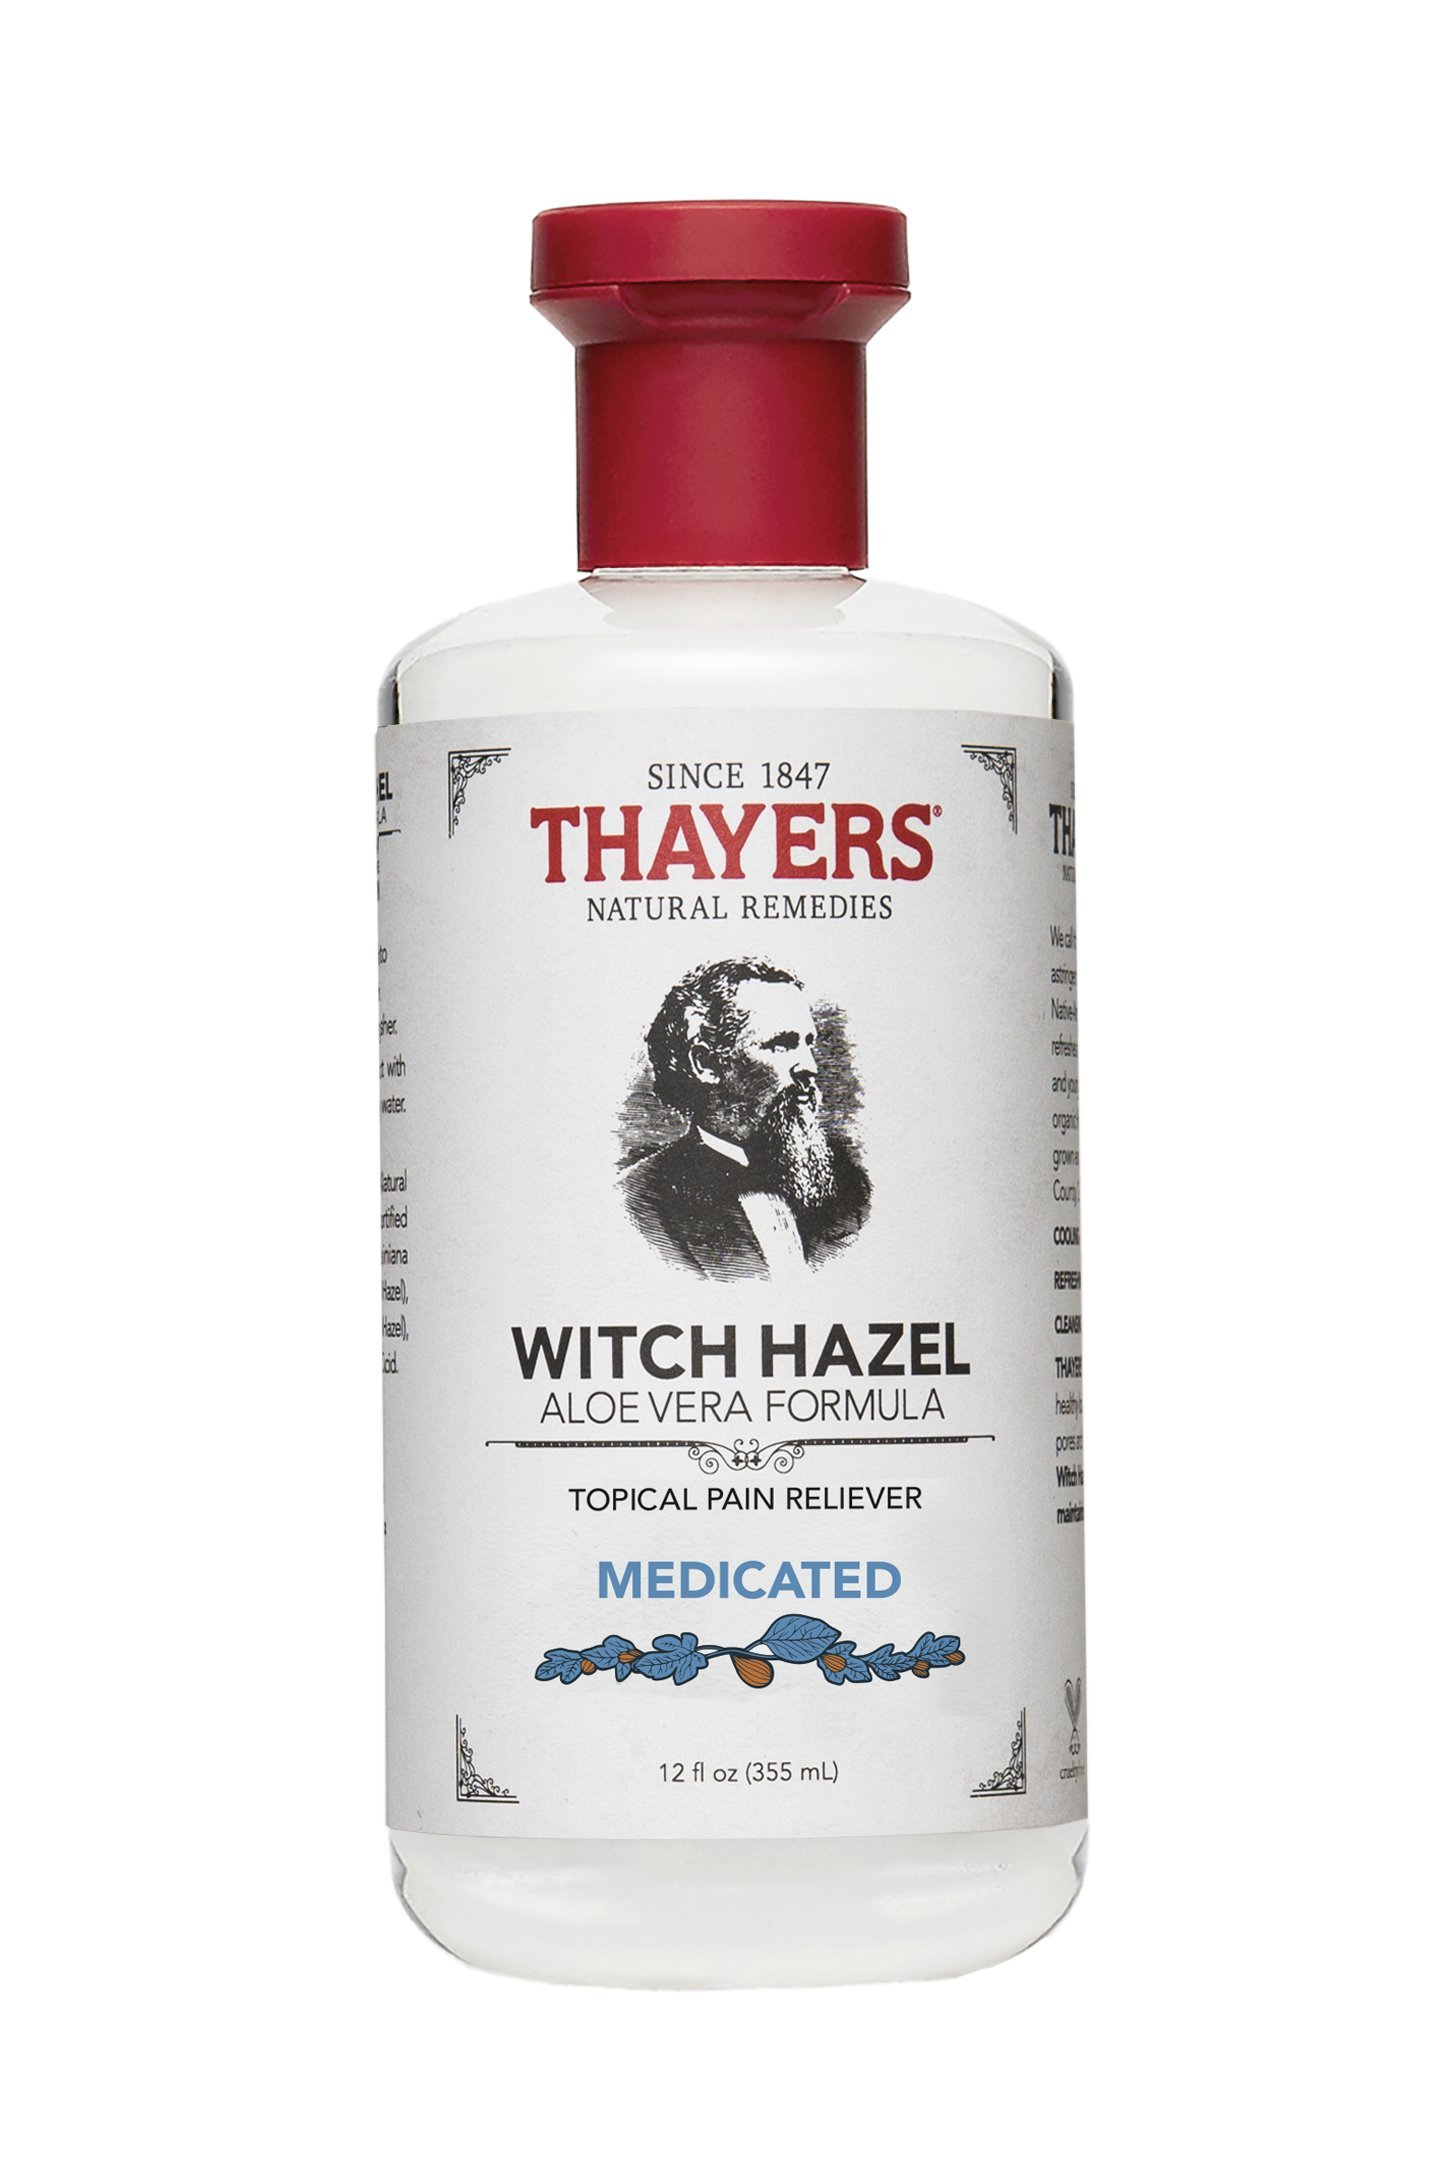 Thayers Witch Hazel with Aloe Vera, Original Astringent 12 oz (Pack of 2) trilogy ultra hydrating face cream for unisex, 2.5 ounce